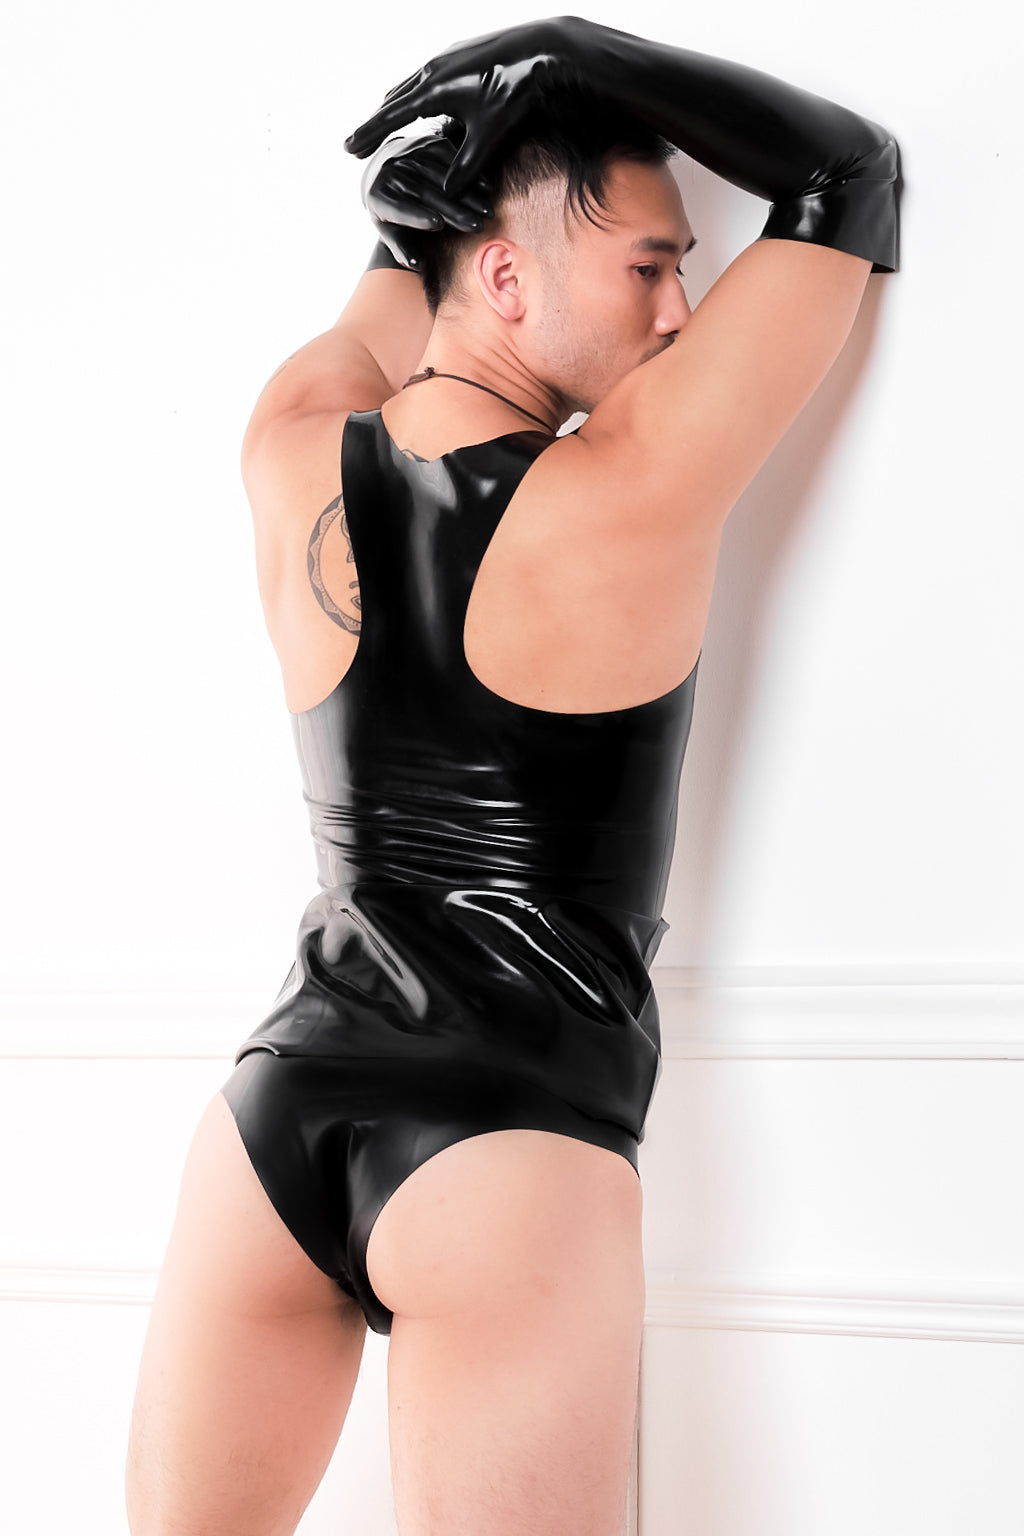 A man wearing a black latex muscle vest, latex elbow gloves and latex underwear. A rear view showing the back.